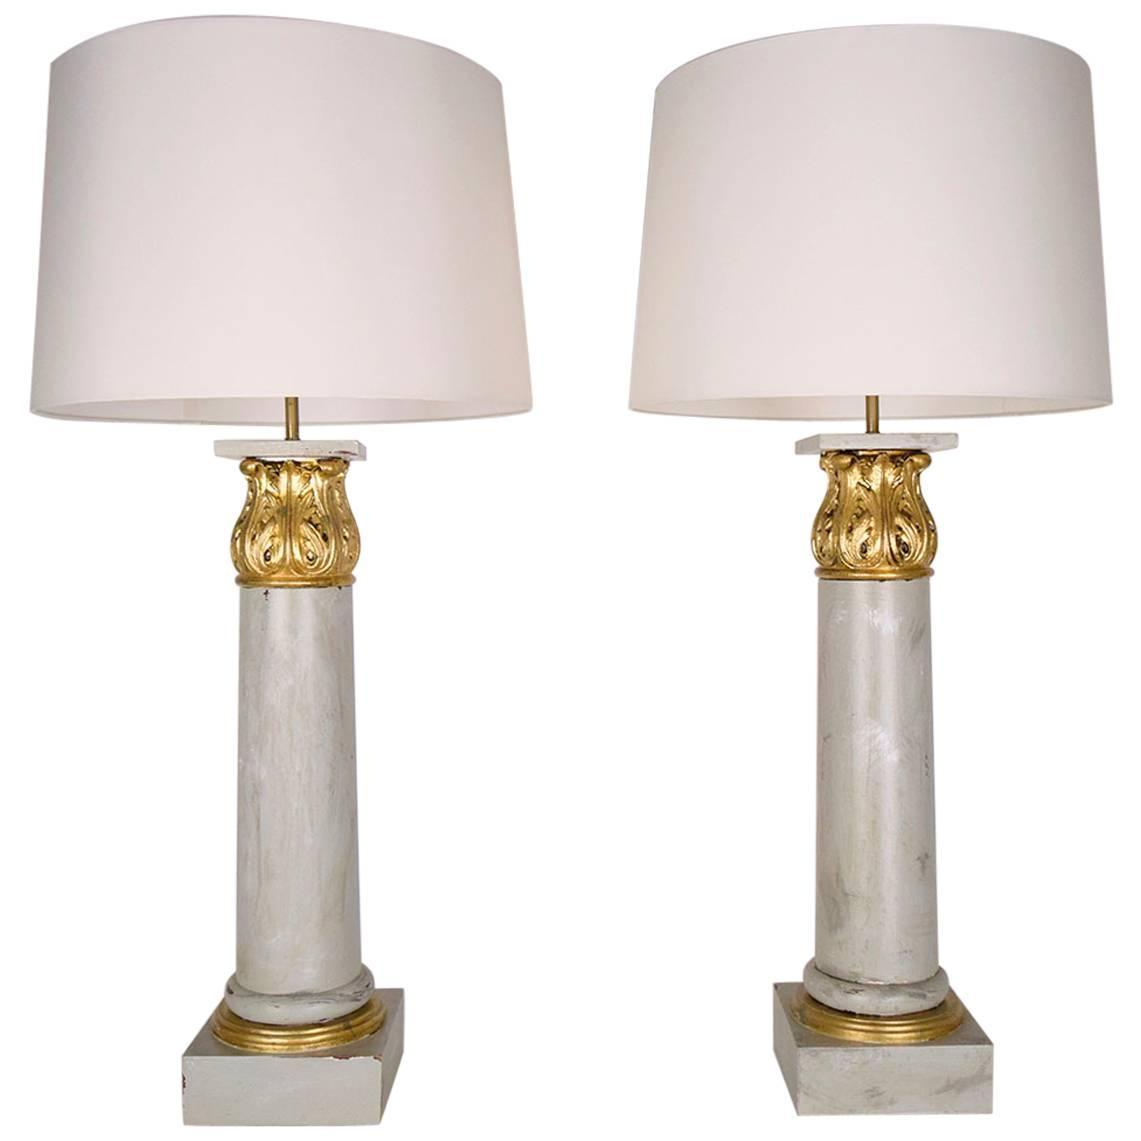 pair of french wood corinthian column table lamps for sale at 1stdibs. Black Bedroom Furniture Sets. Home Design Ideas